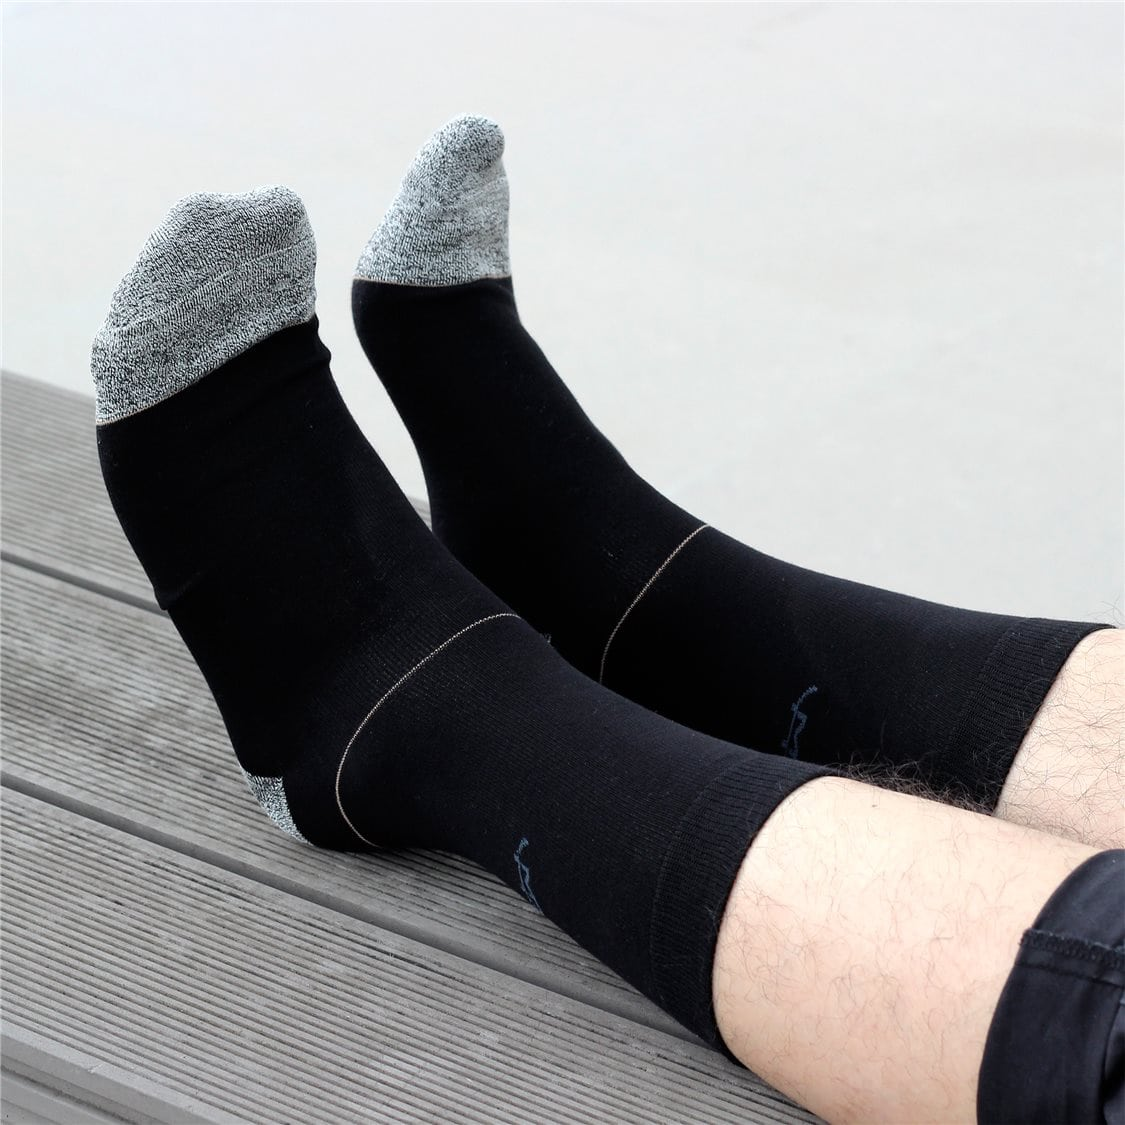 Tech is now coming to your… socks